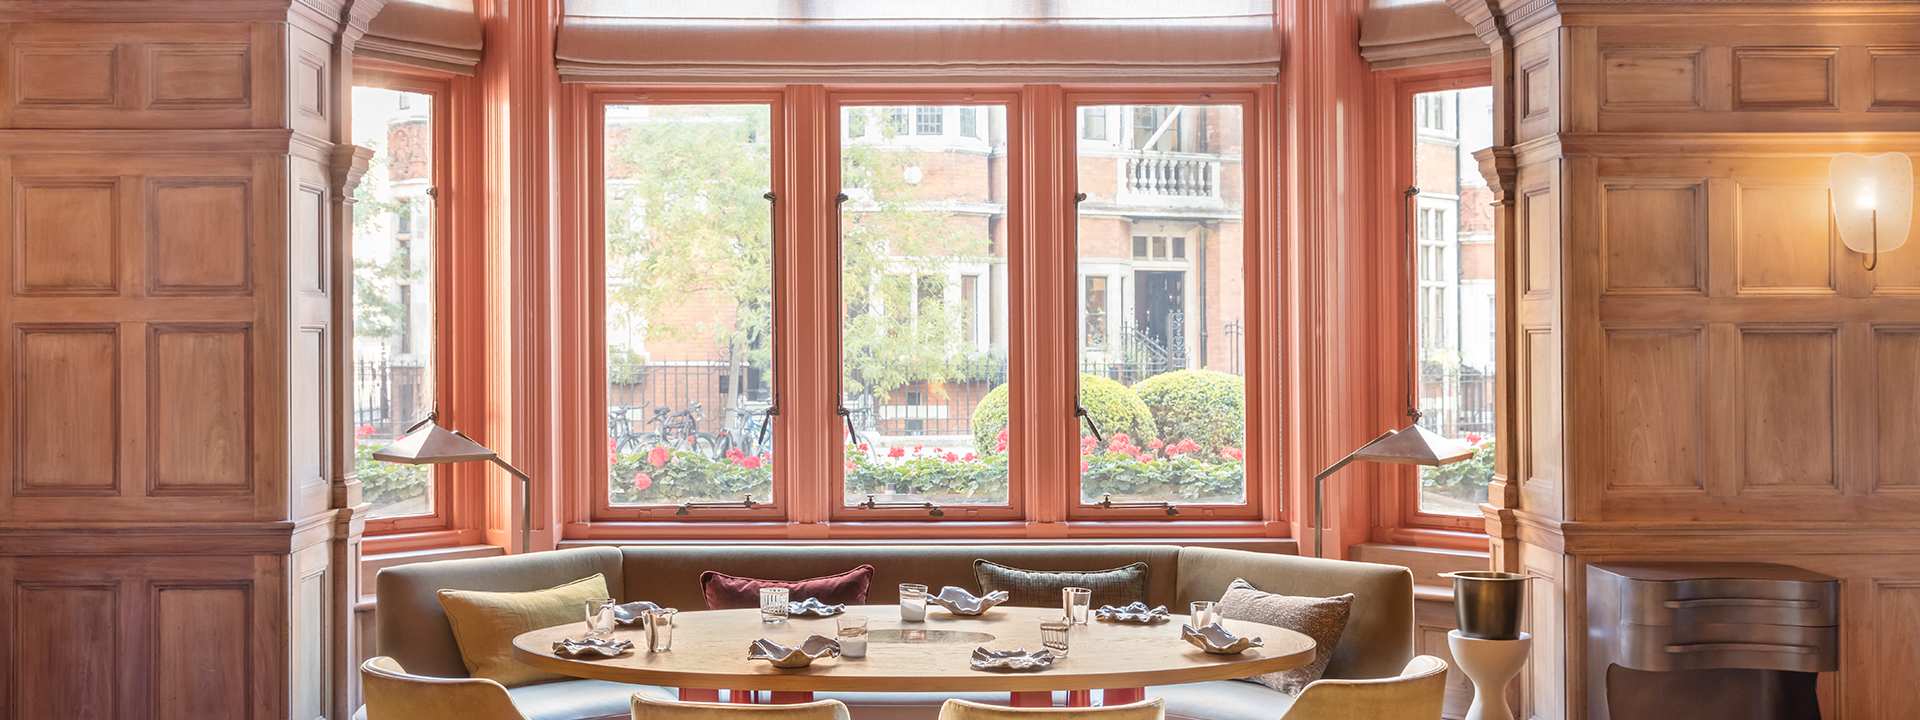 Large bay windows interior of Hélène Darroze at The Connaught in Mayfair